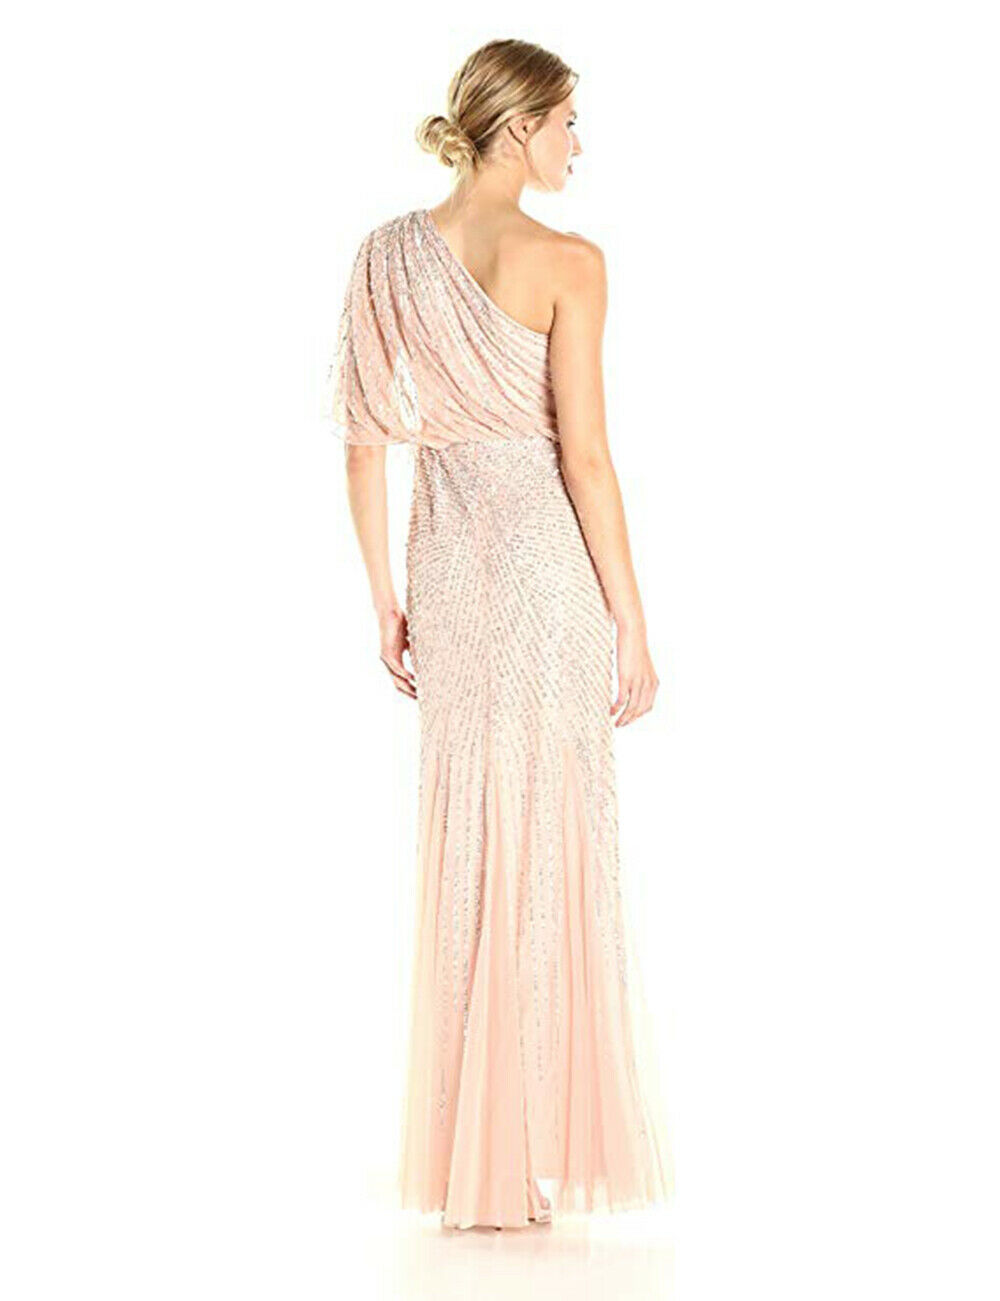 Adrianna Papell One Shoulder Sequin Beaded Blouson Gown, Blush, 20W